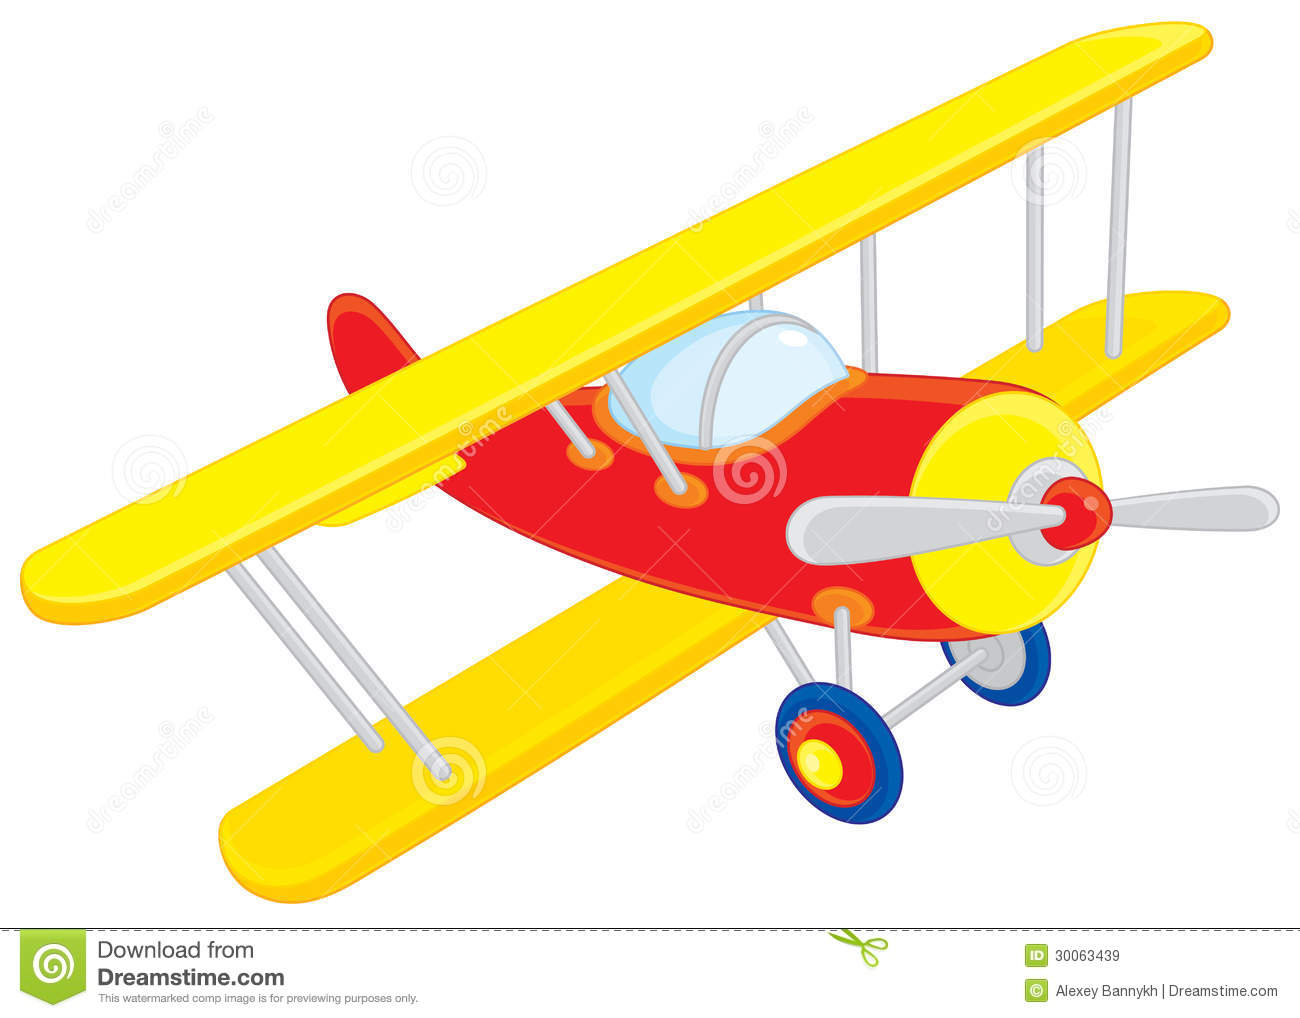 plane stock vector illustration of drawing clip aircraft 30063439 rh dreamstime com aircraft clipart png aircraft clipart silhouette